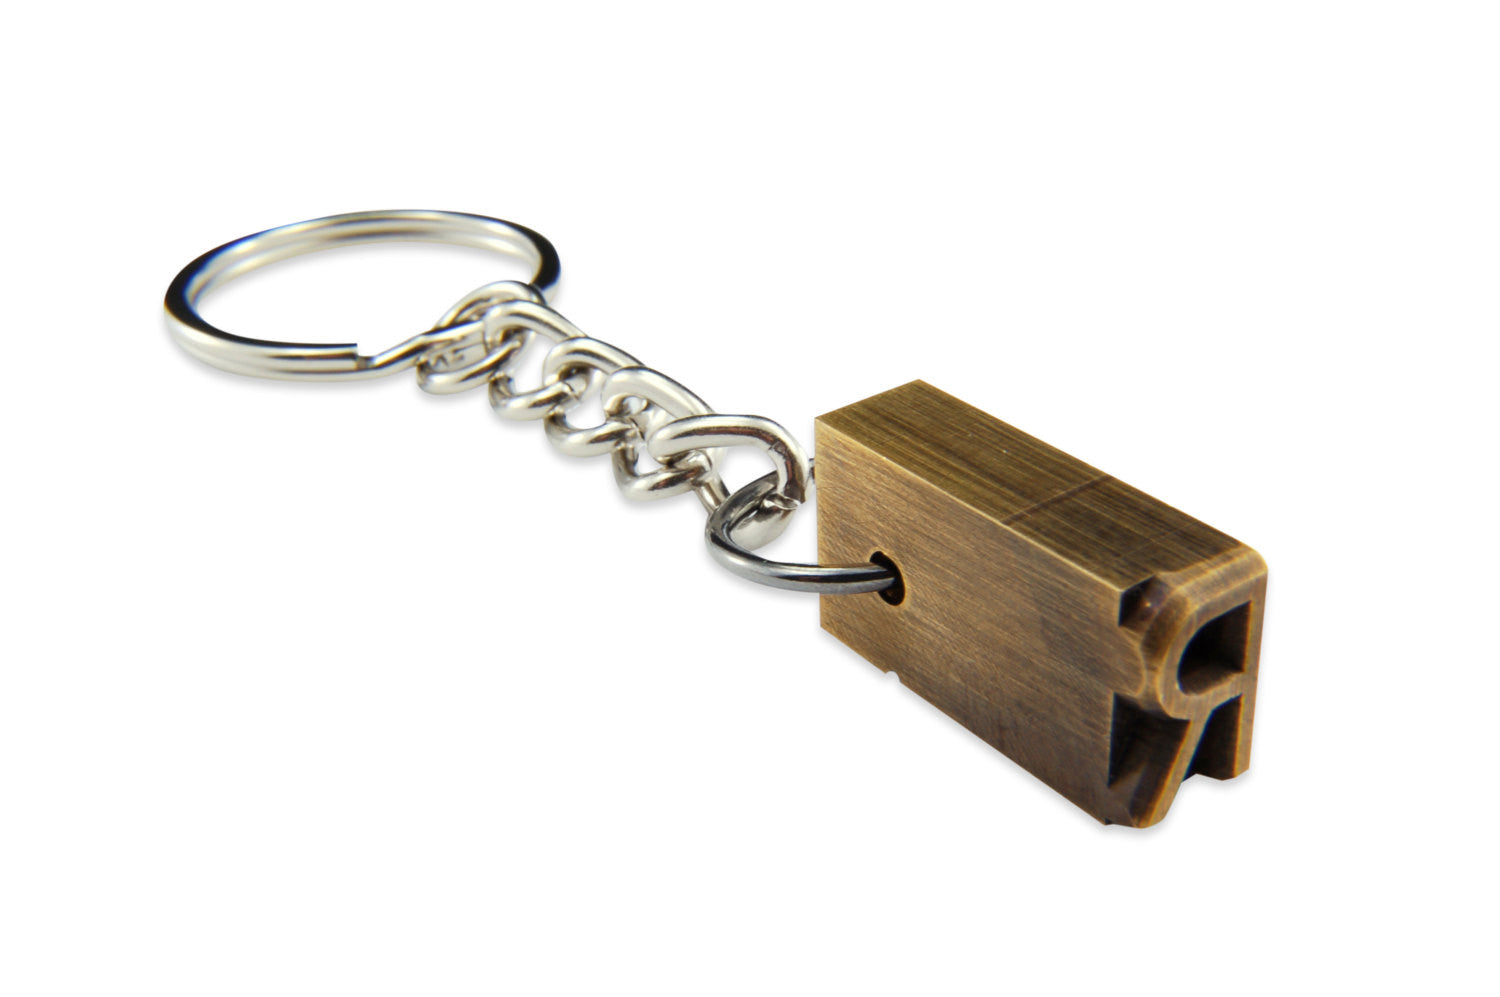 Brass Letterpress Keychain - Gwen Delicious Jewelry Designs